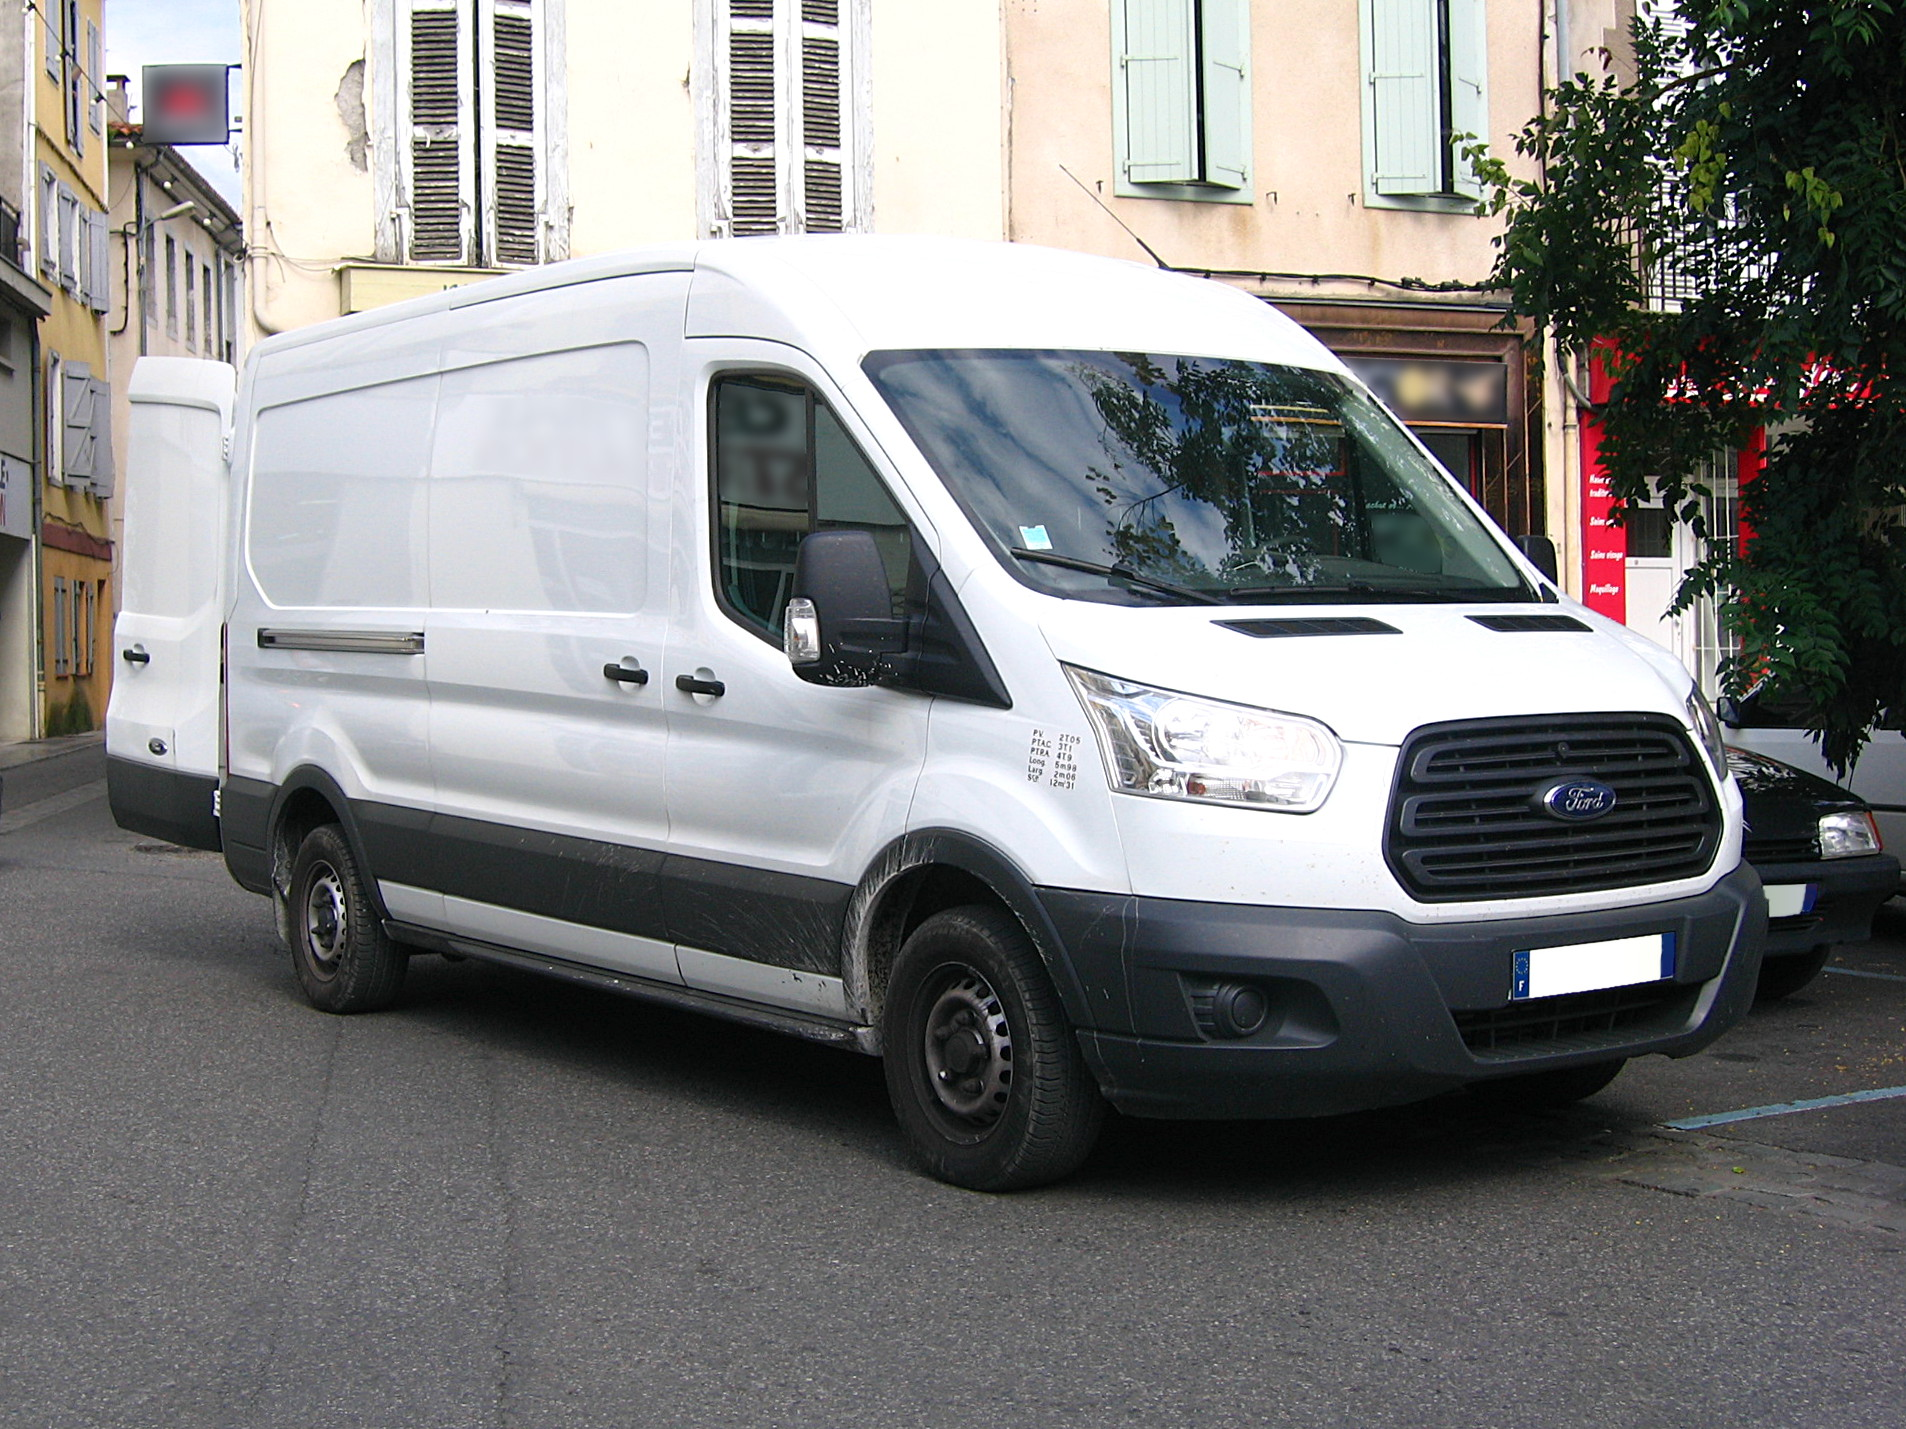 file 2014 ford transit fr jpg wikimedia commons. Black Bedroom Furniture Sets. Home Design Ideas